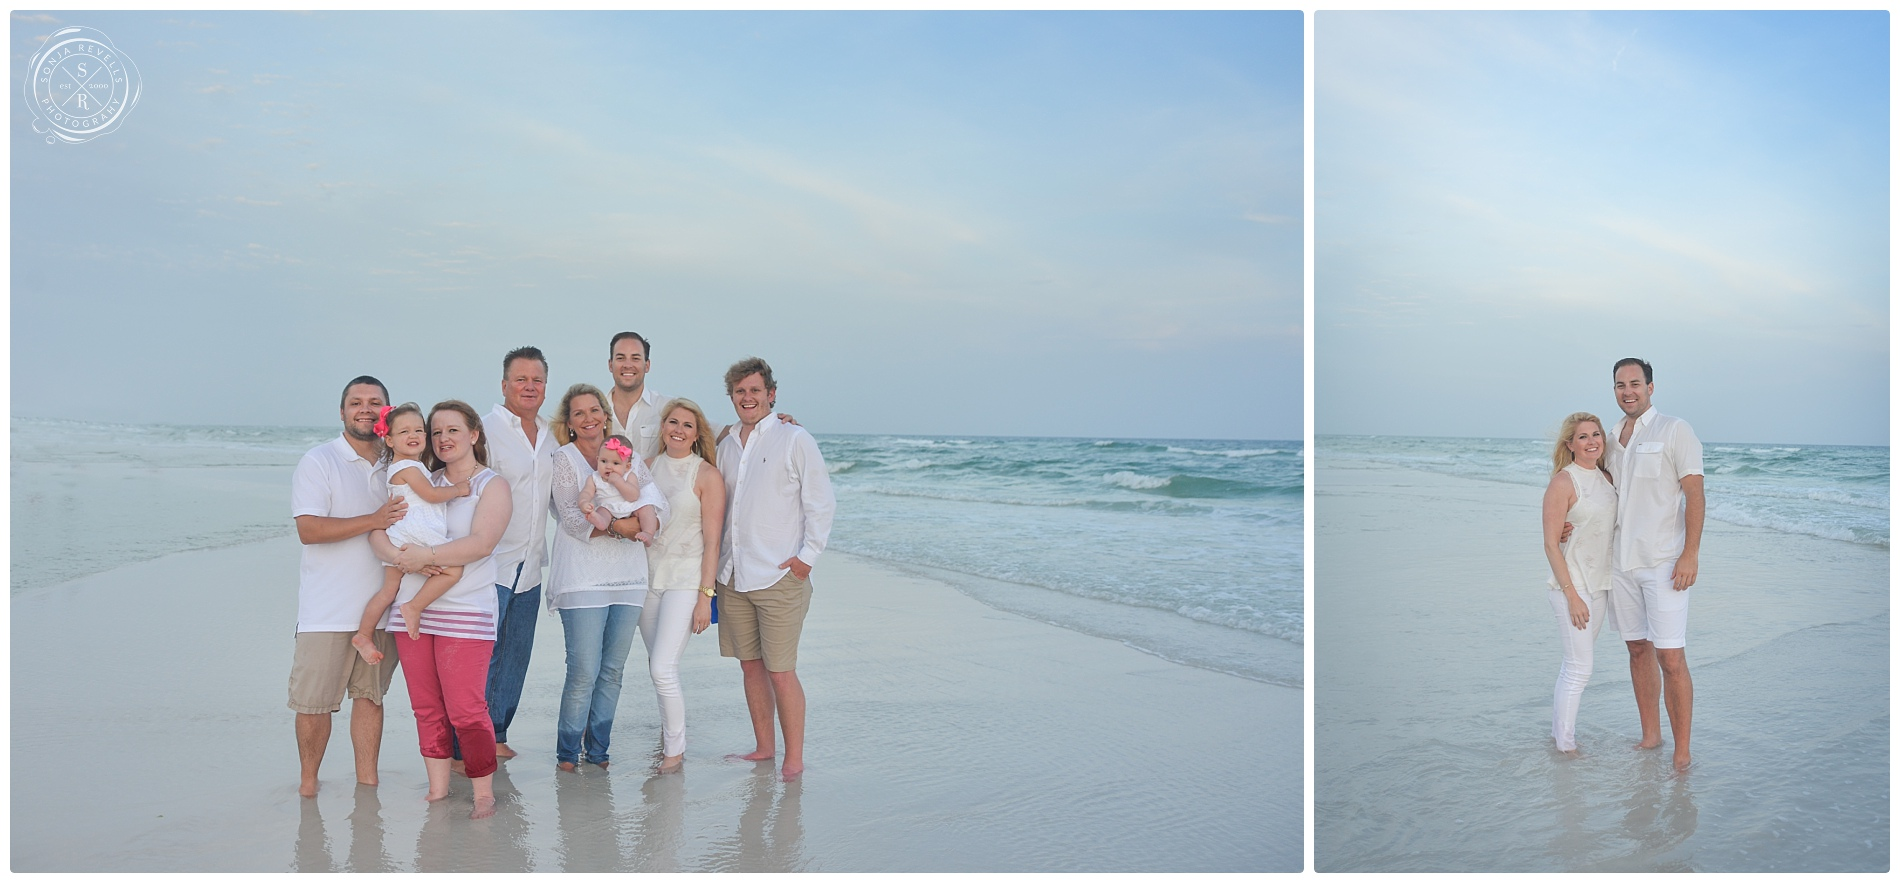 Beach Family Portrait Photographer,Wedding Photography,